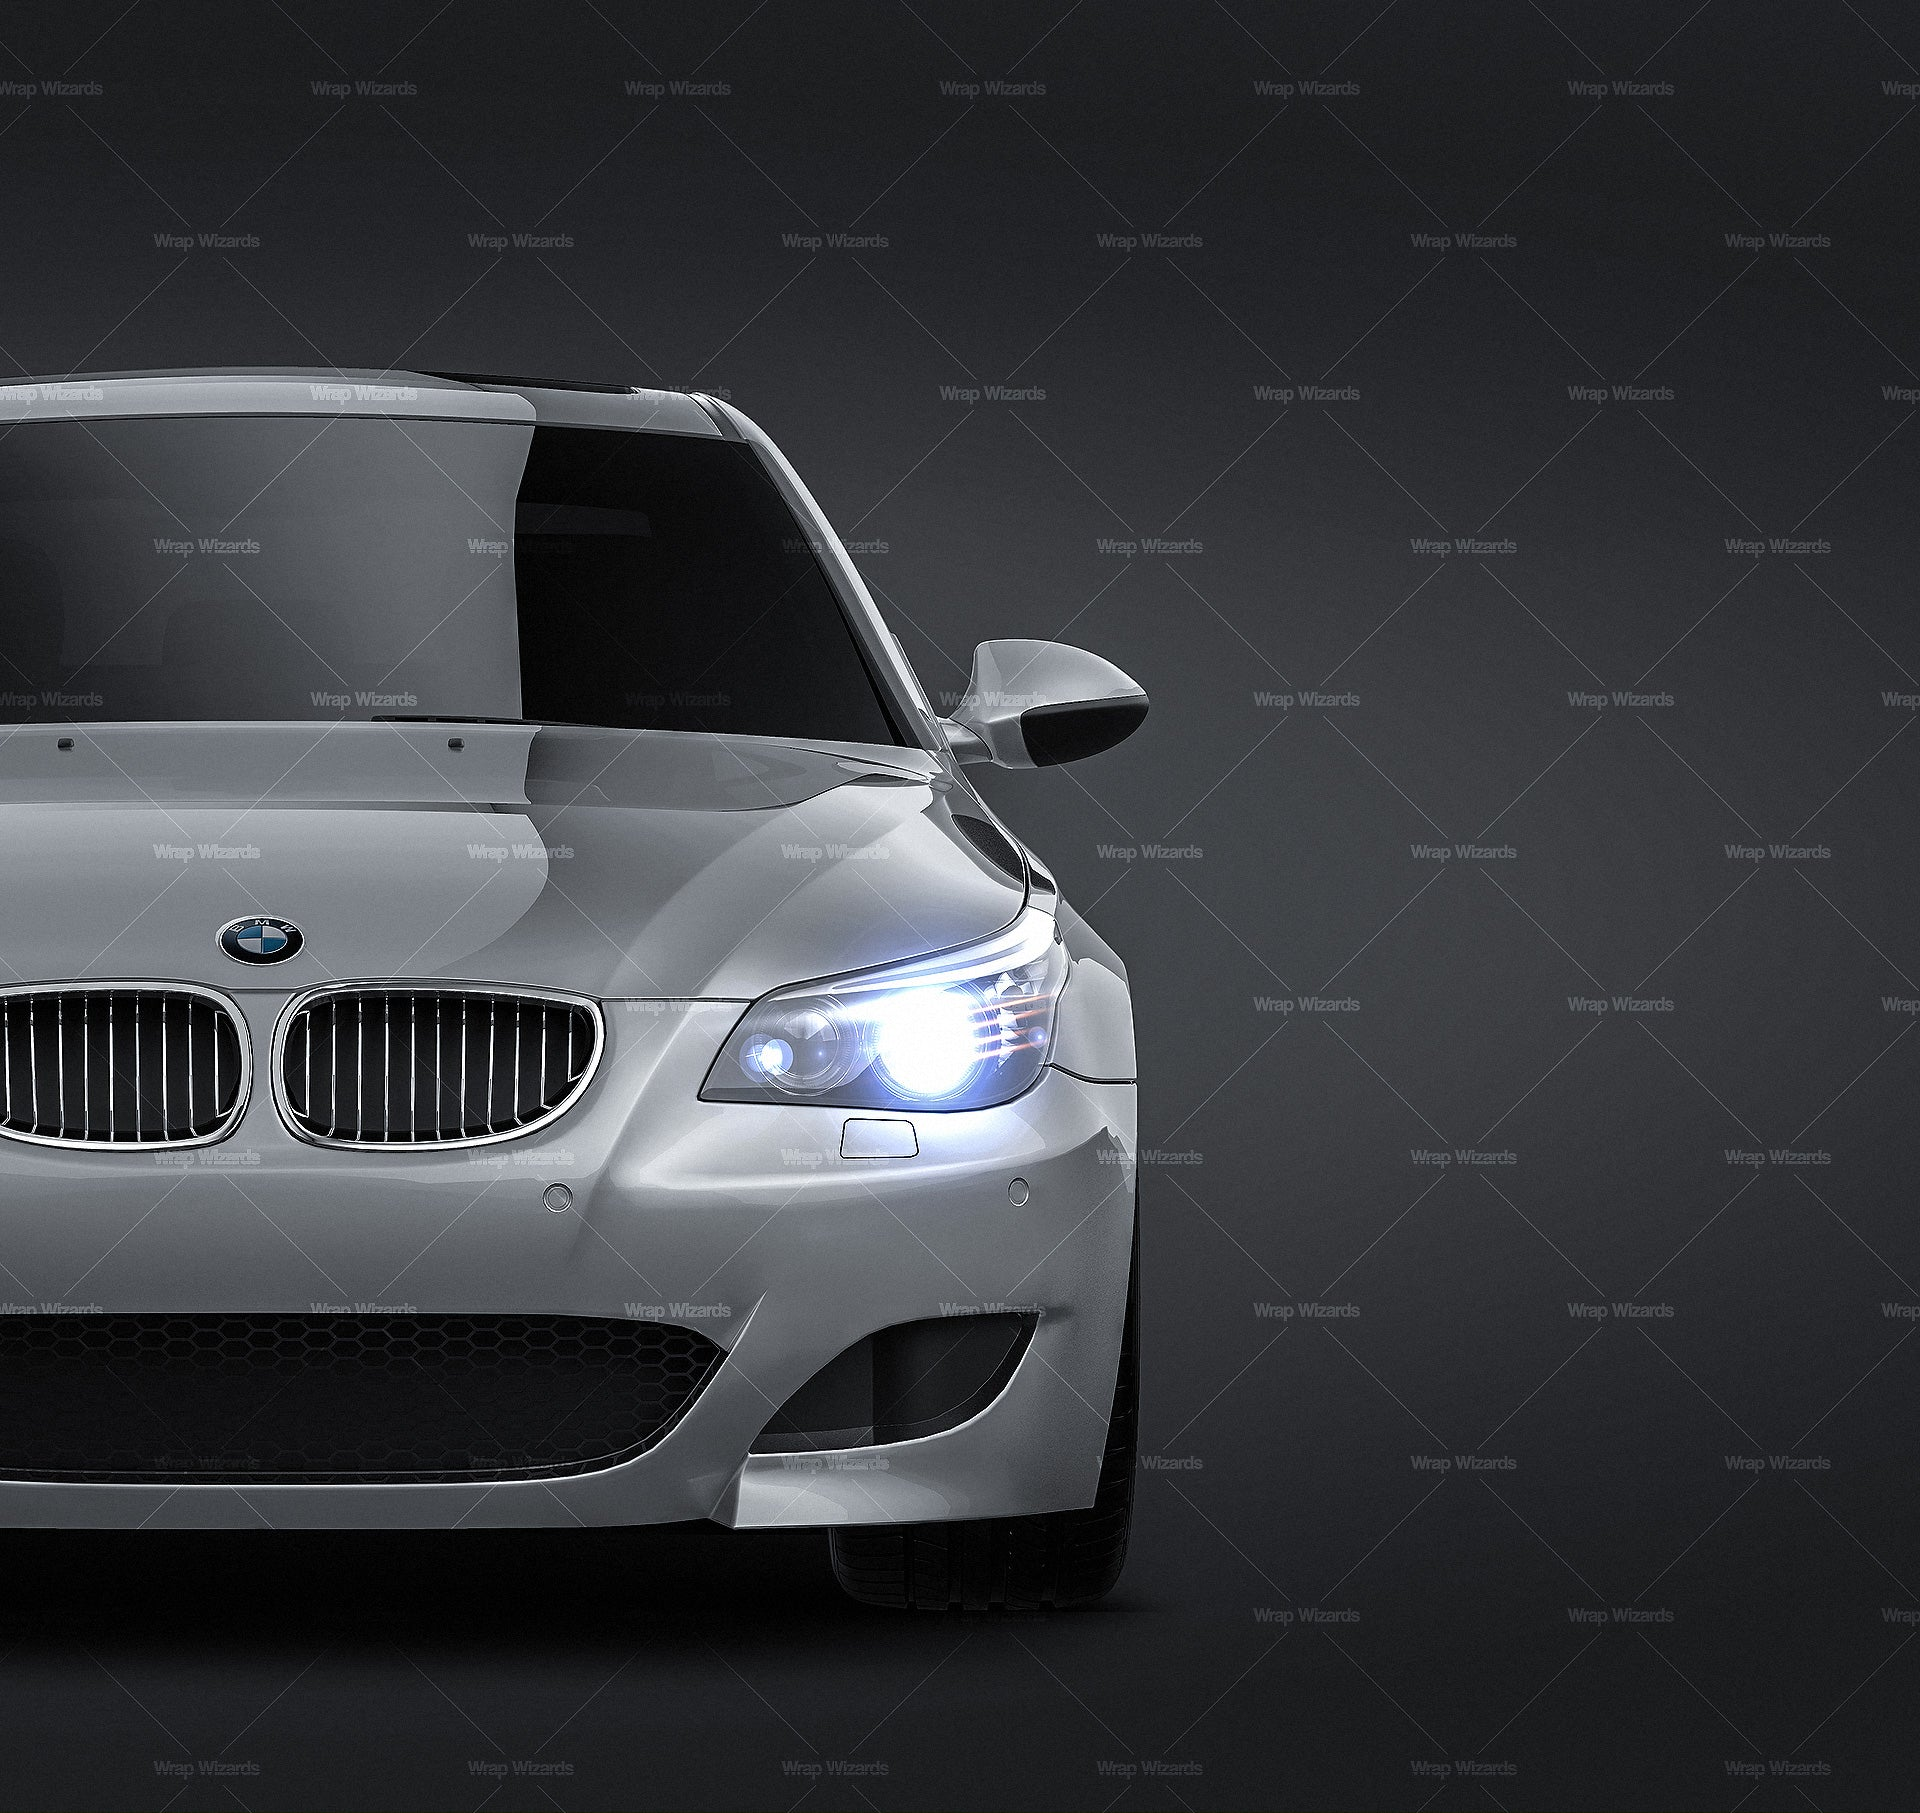 BMW M5 E60 2005-2010 all sides Car Mockup Template.psd